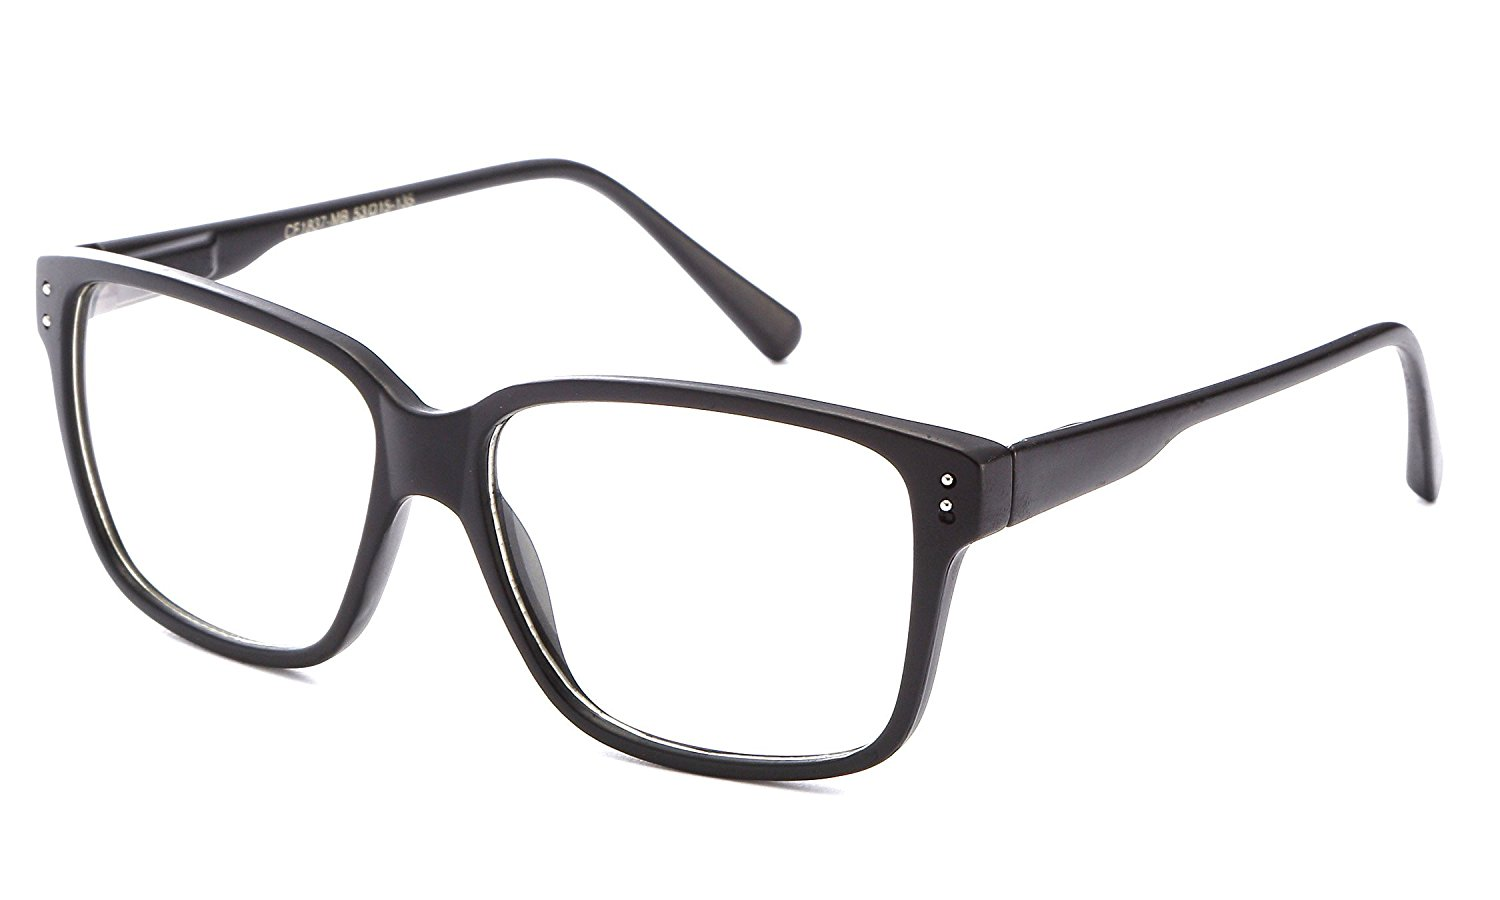 a5566e40ea Get Quotations · Newbee Fashion- Casual Nerd Thick Clear Frames Fashion  Glasses for Women